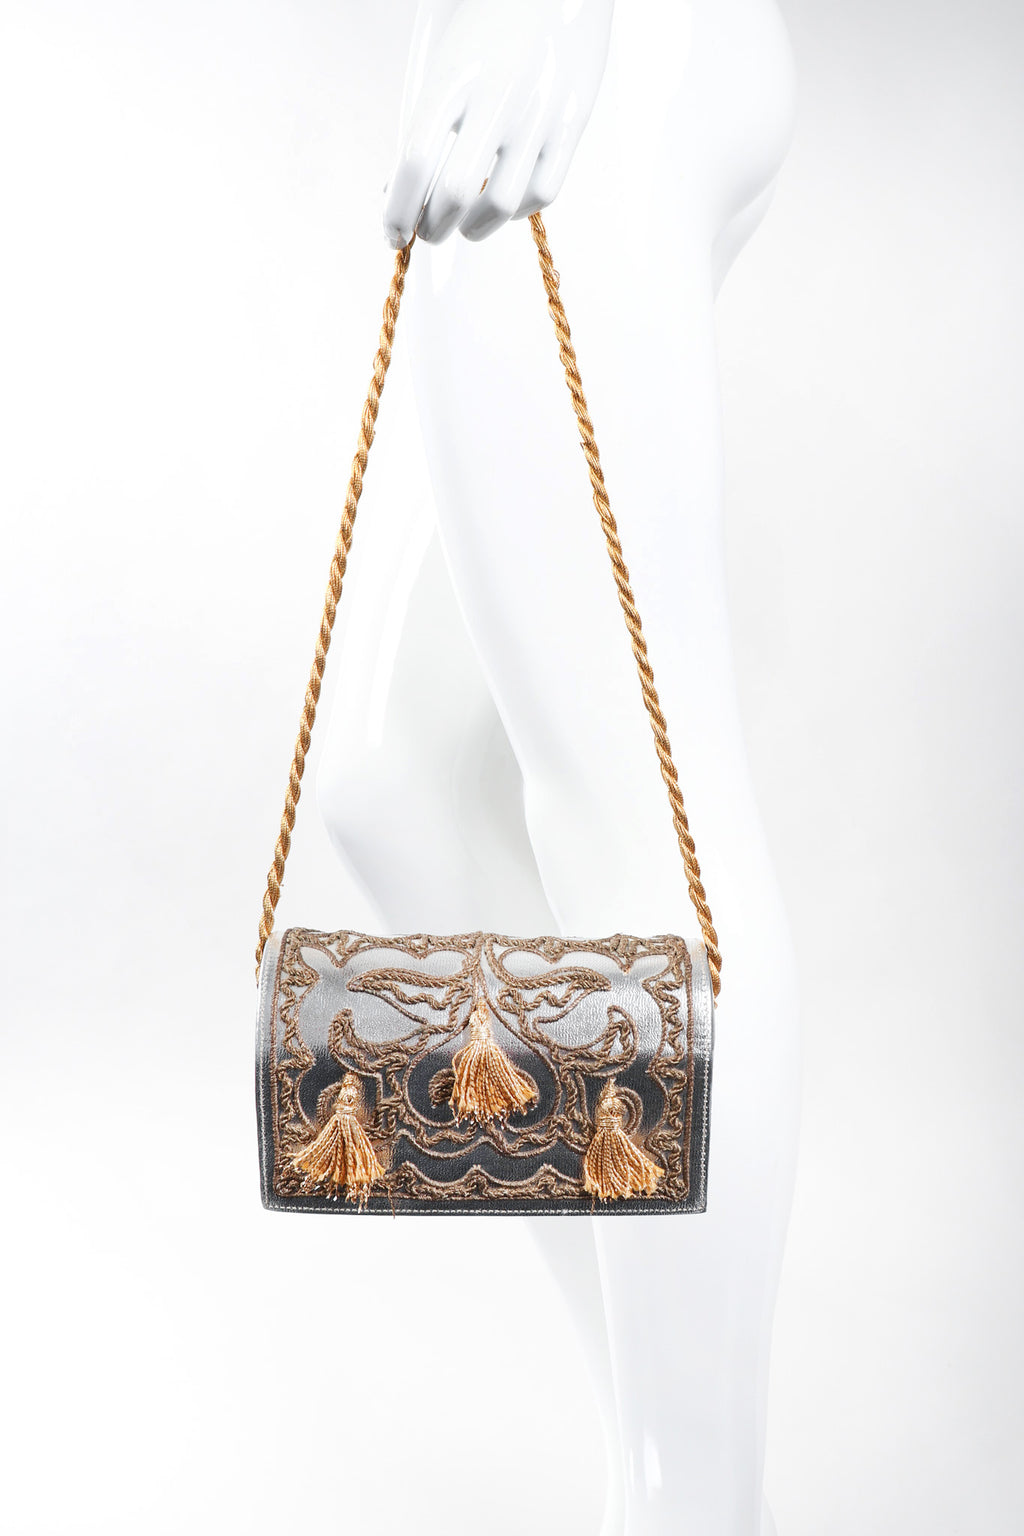 Recess Los Angeles Vintage Arnold Scaasi Embroidered Metallic Lamé Shoulder Bag